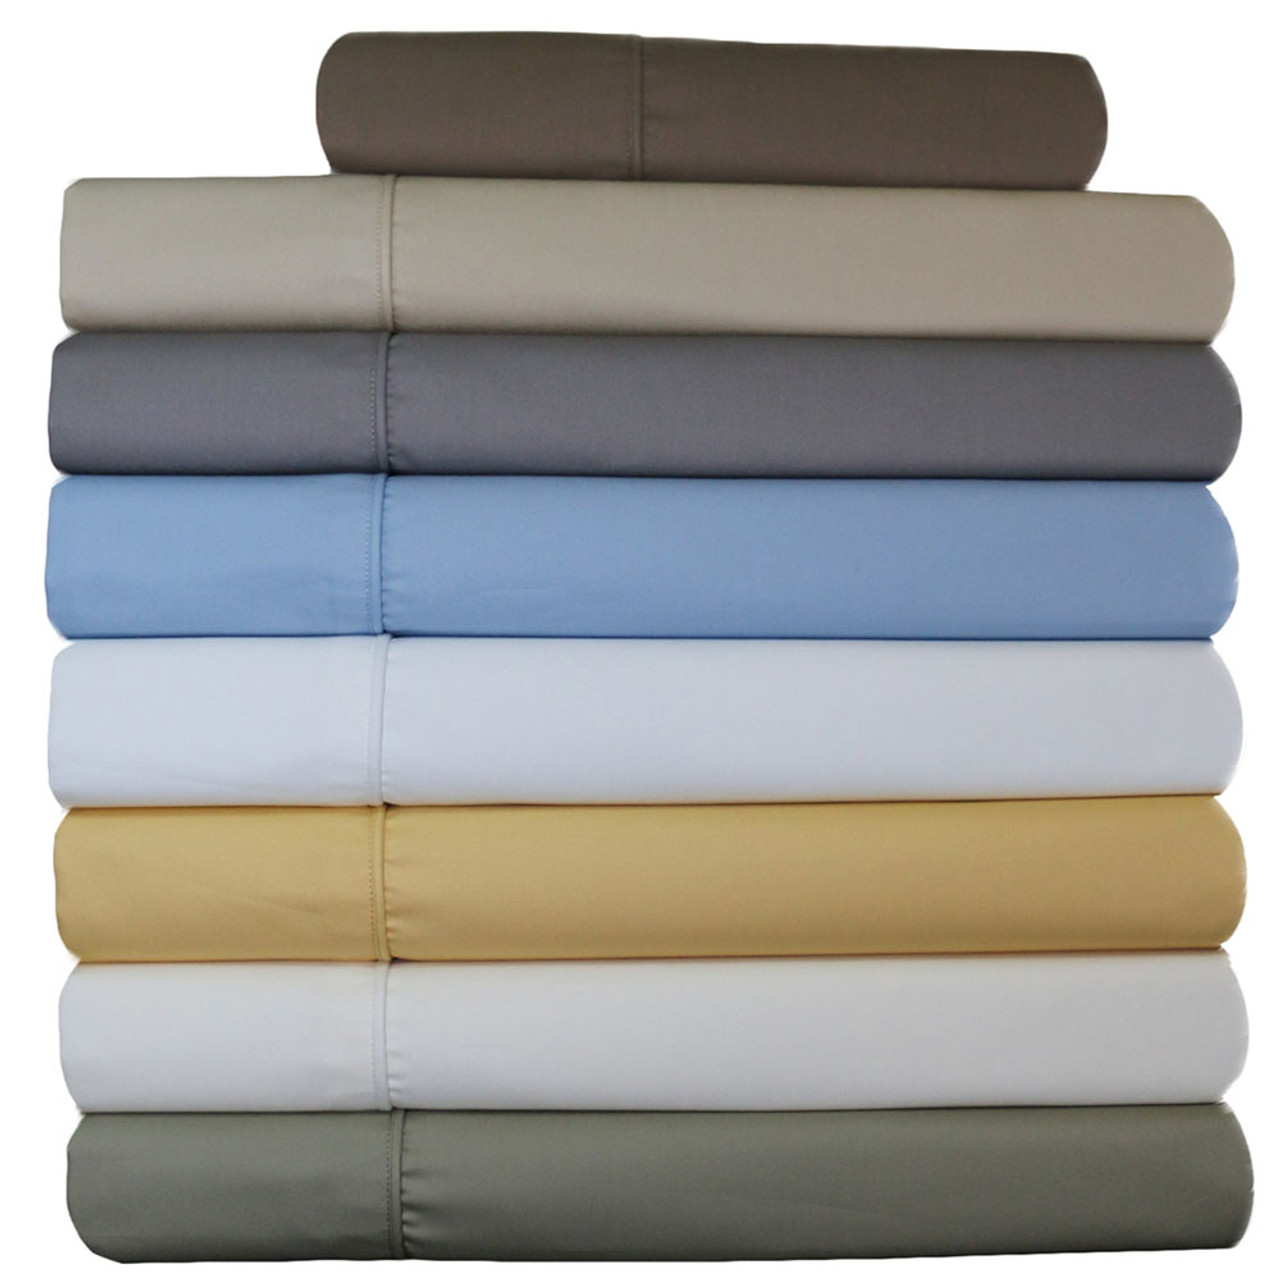 650 Thread Count Wrinkle Free Cotton Sheets Set ...